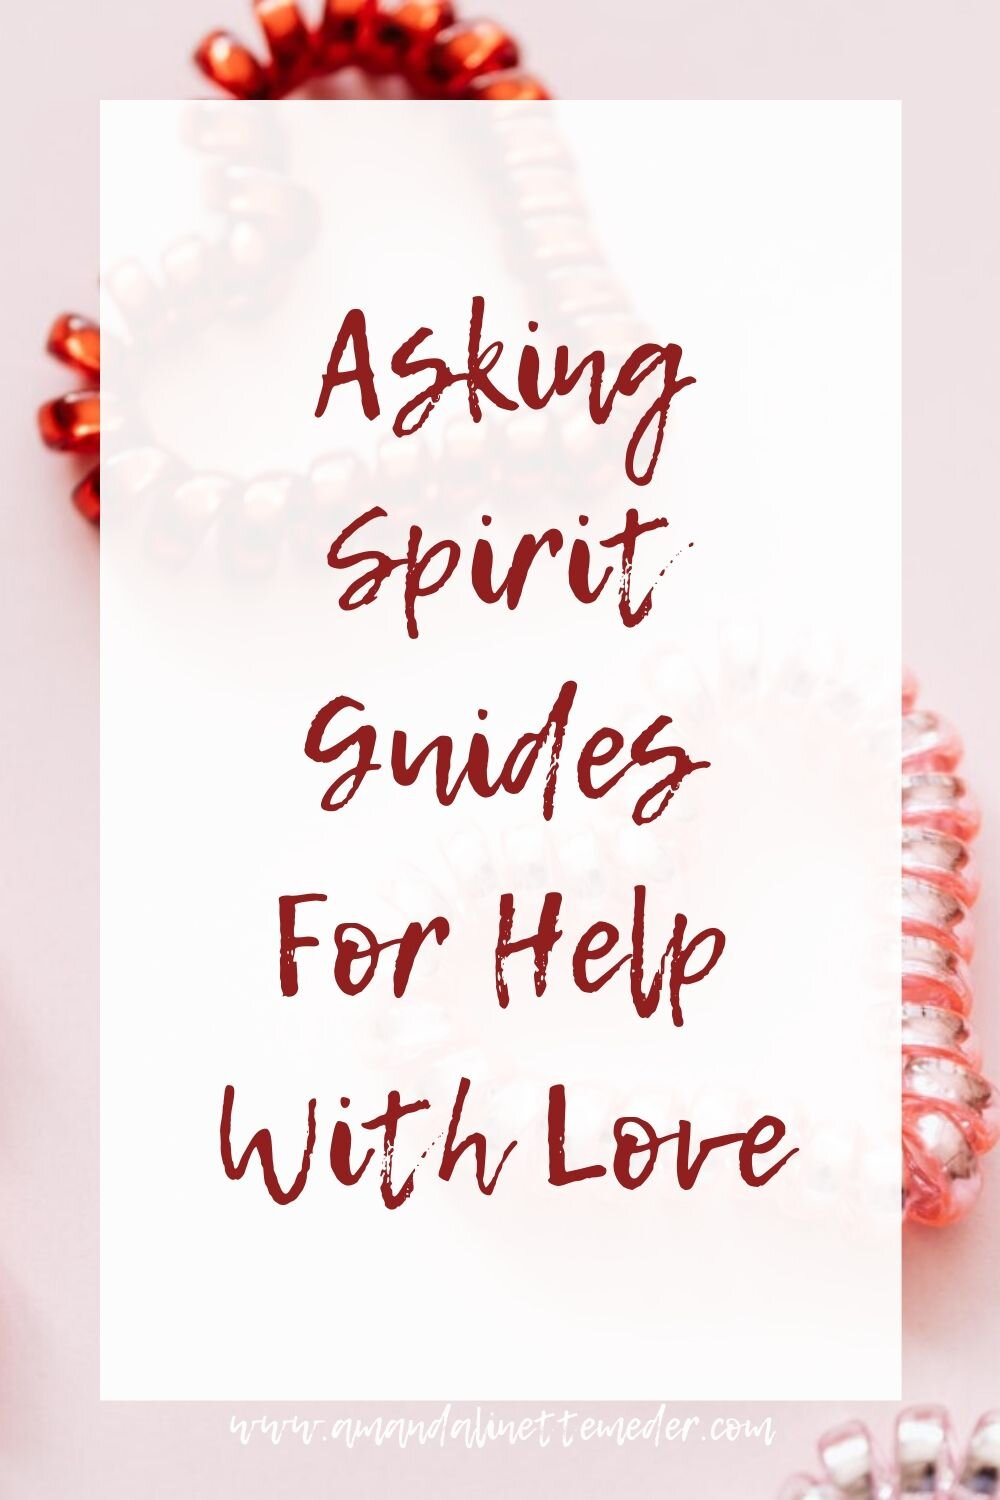 Spirit Guides - How To Communicate for help with love tips. Photo of four heart shaped coils up close by Karolina Grabowska from Pexels with text overlay - Asking Spirit Guides For Help With Love.